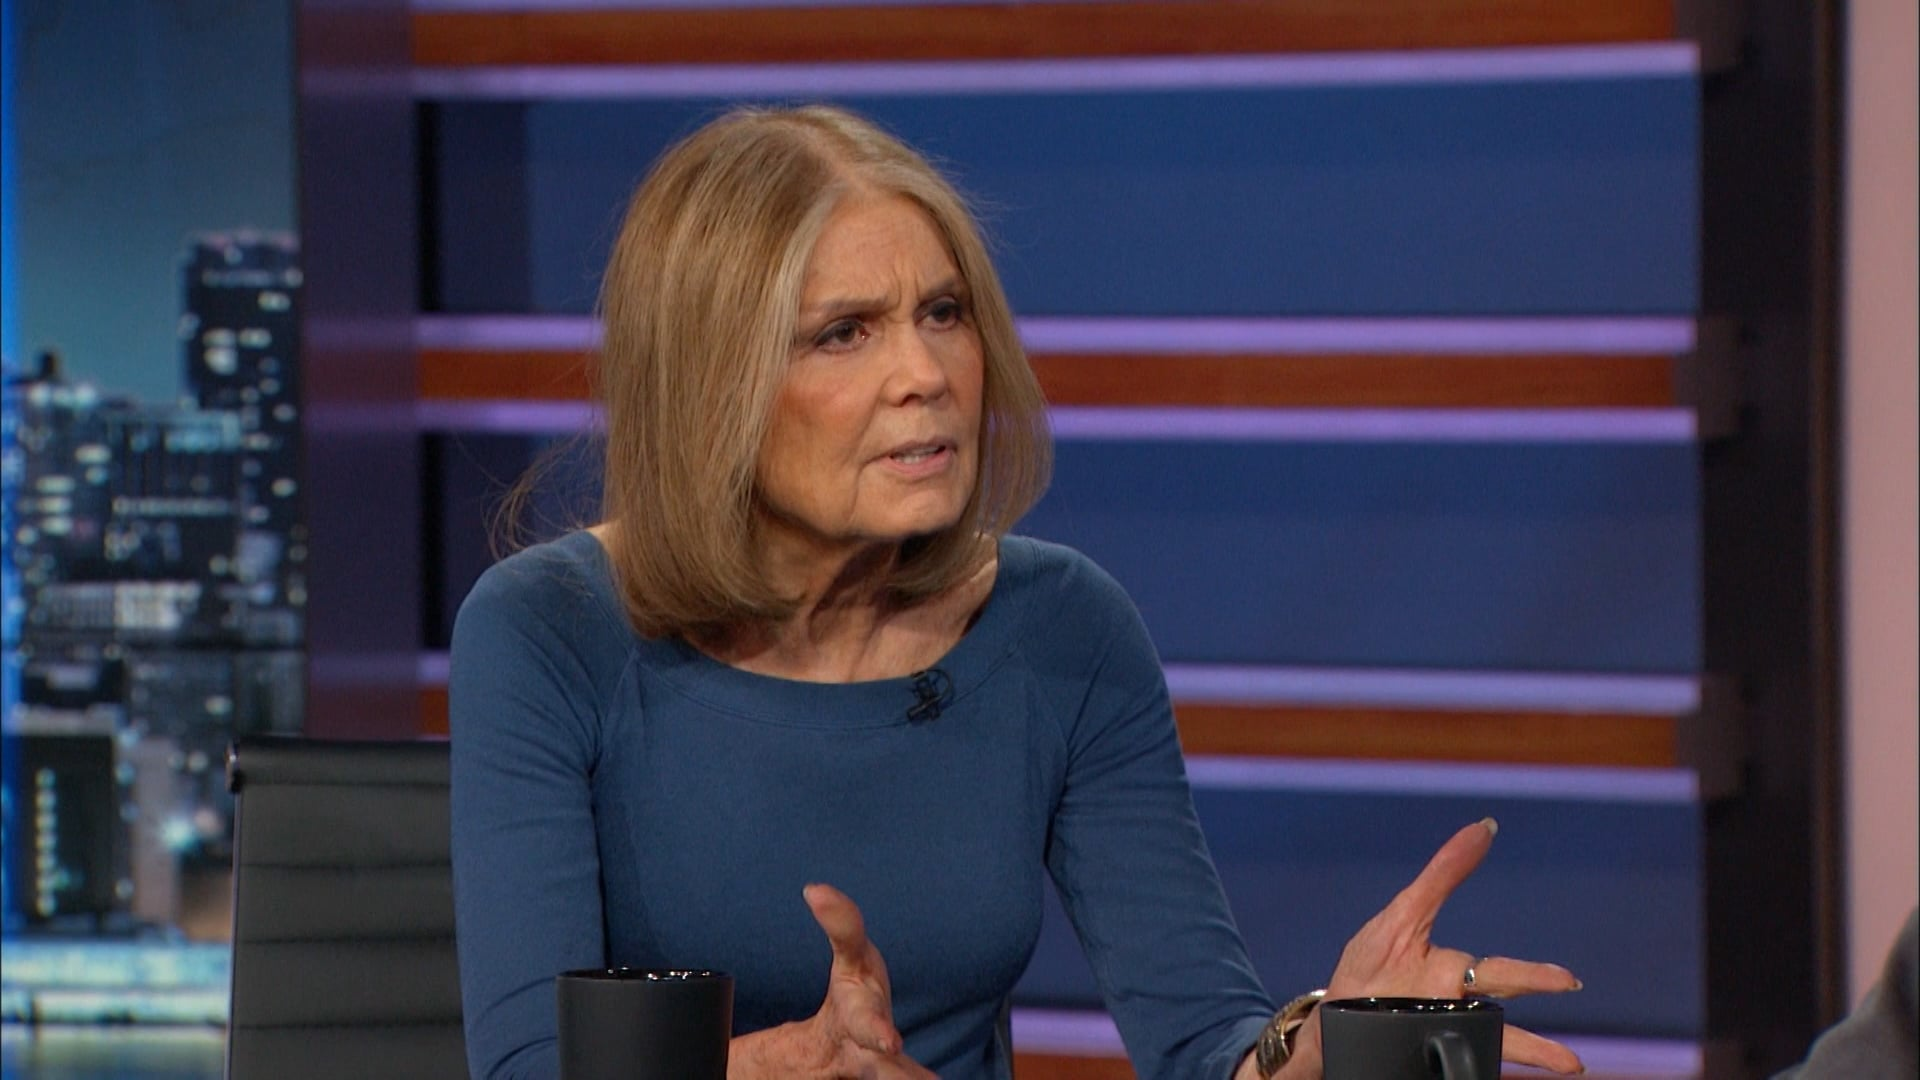 The Daily Show with Trevor Noah Season 21 :Episode 18  Gloria Steinem